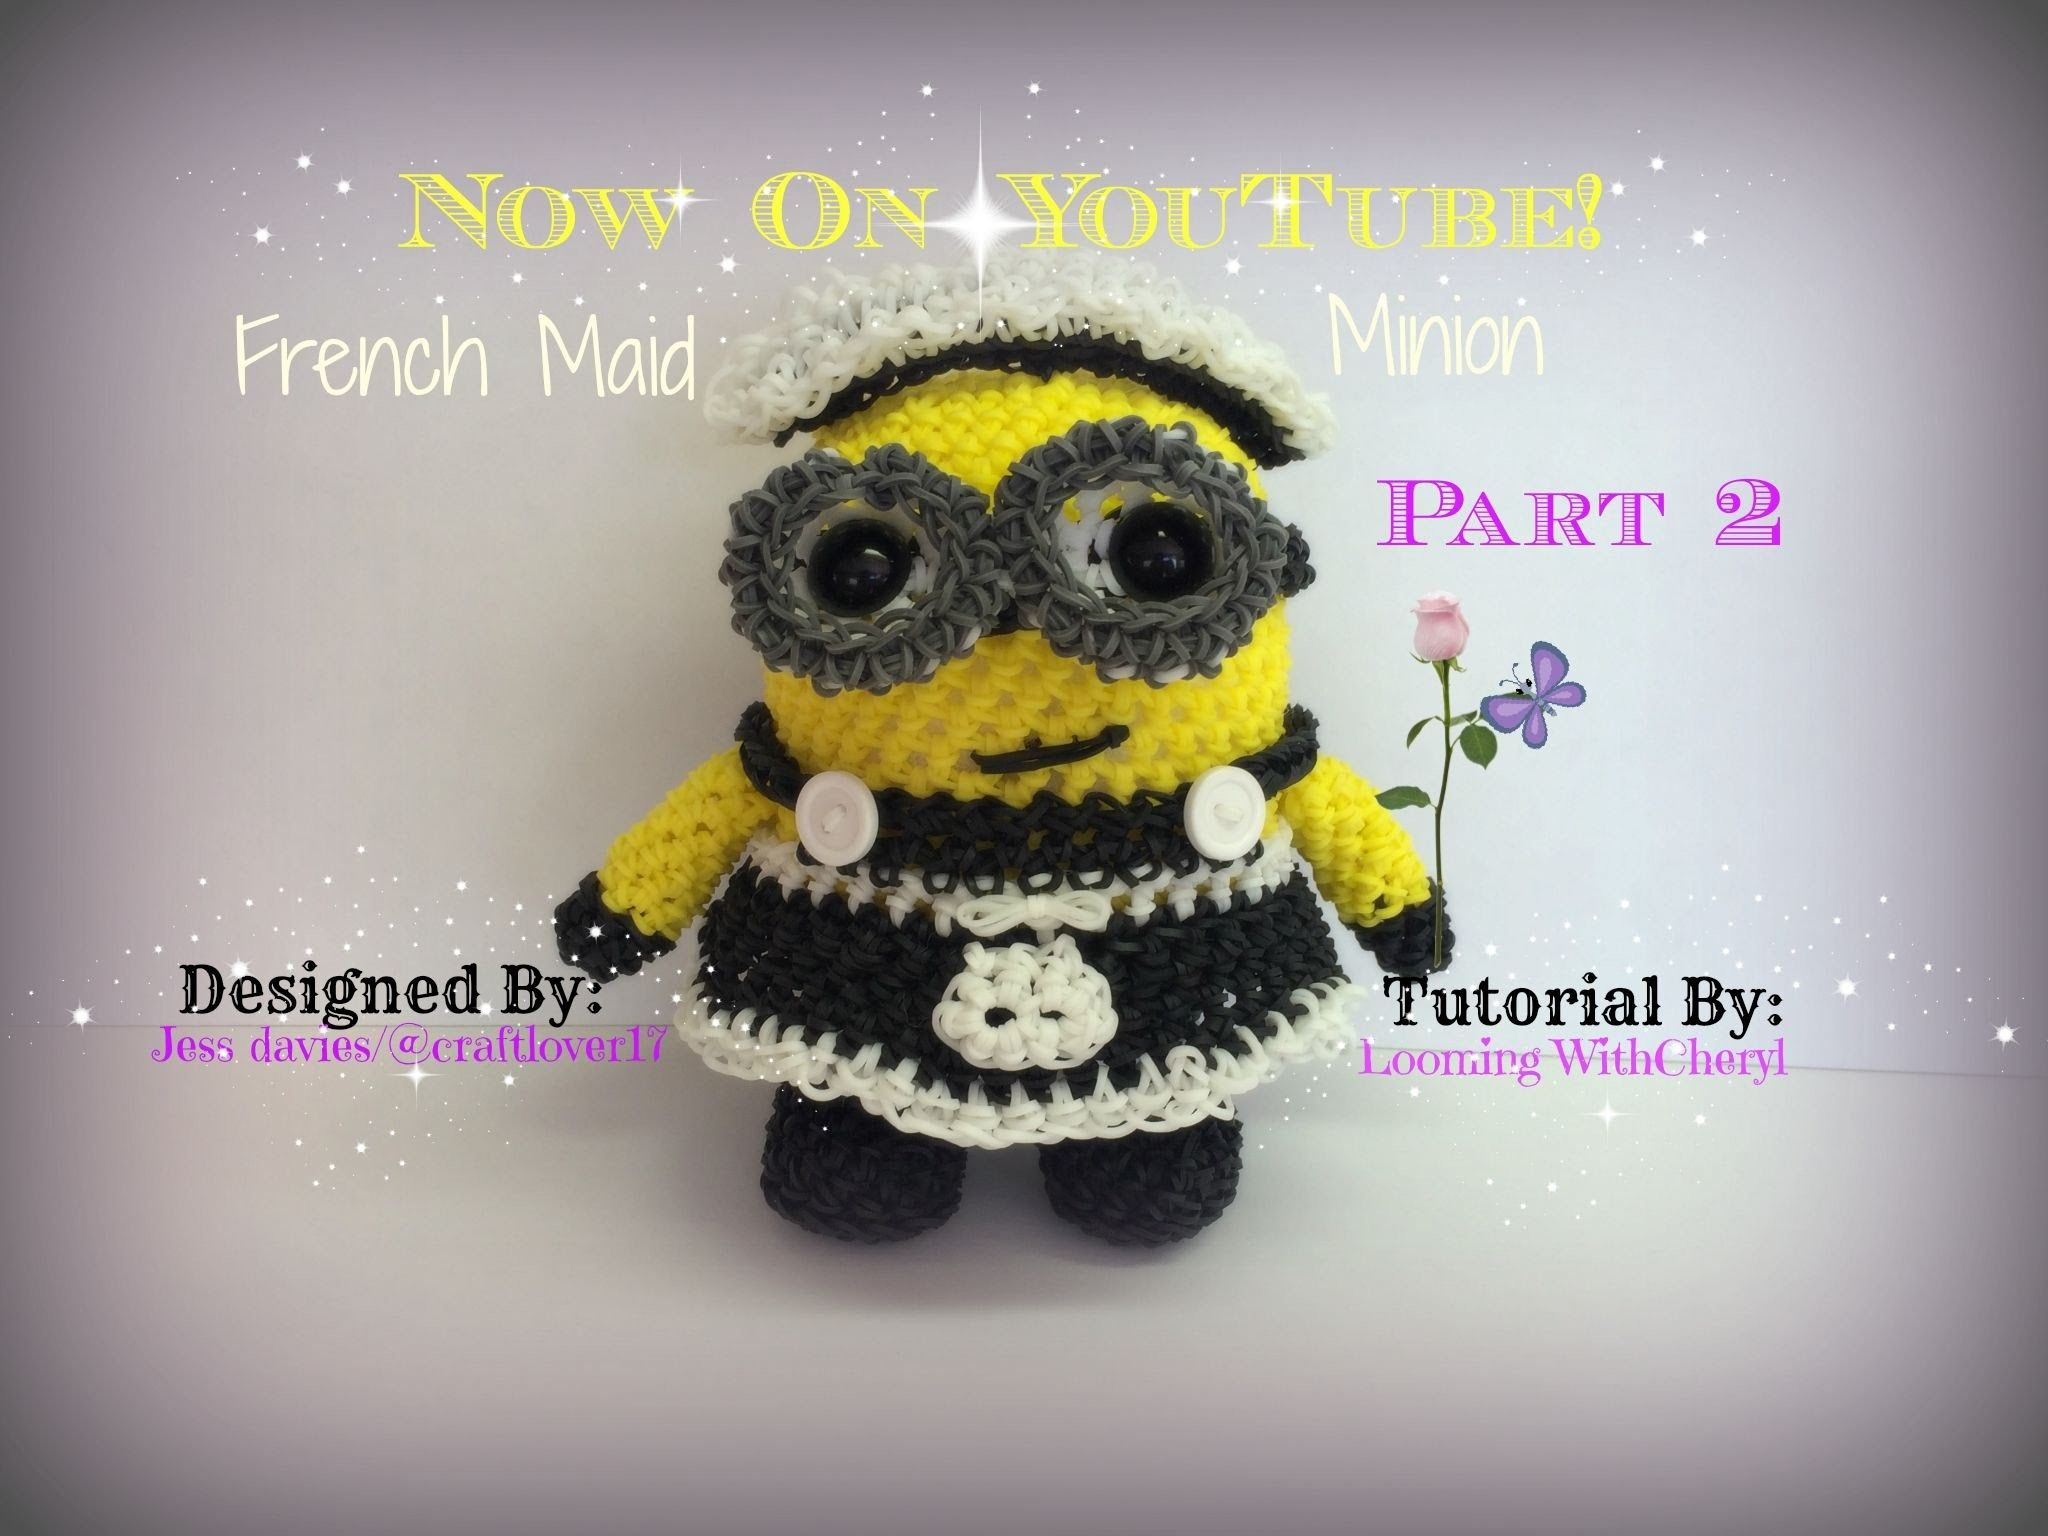 Amigurumi Loom Patterns : Rainbow loom french maid minion part 2 of 3 loomigurumi amigurumi